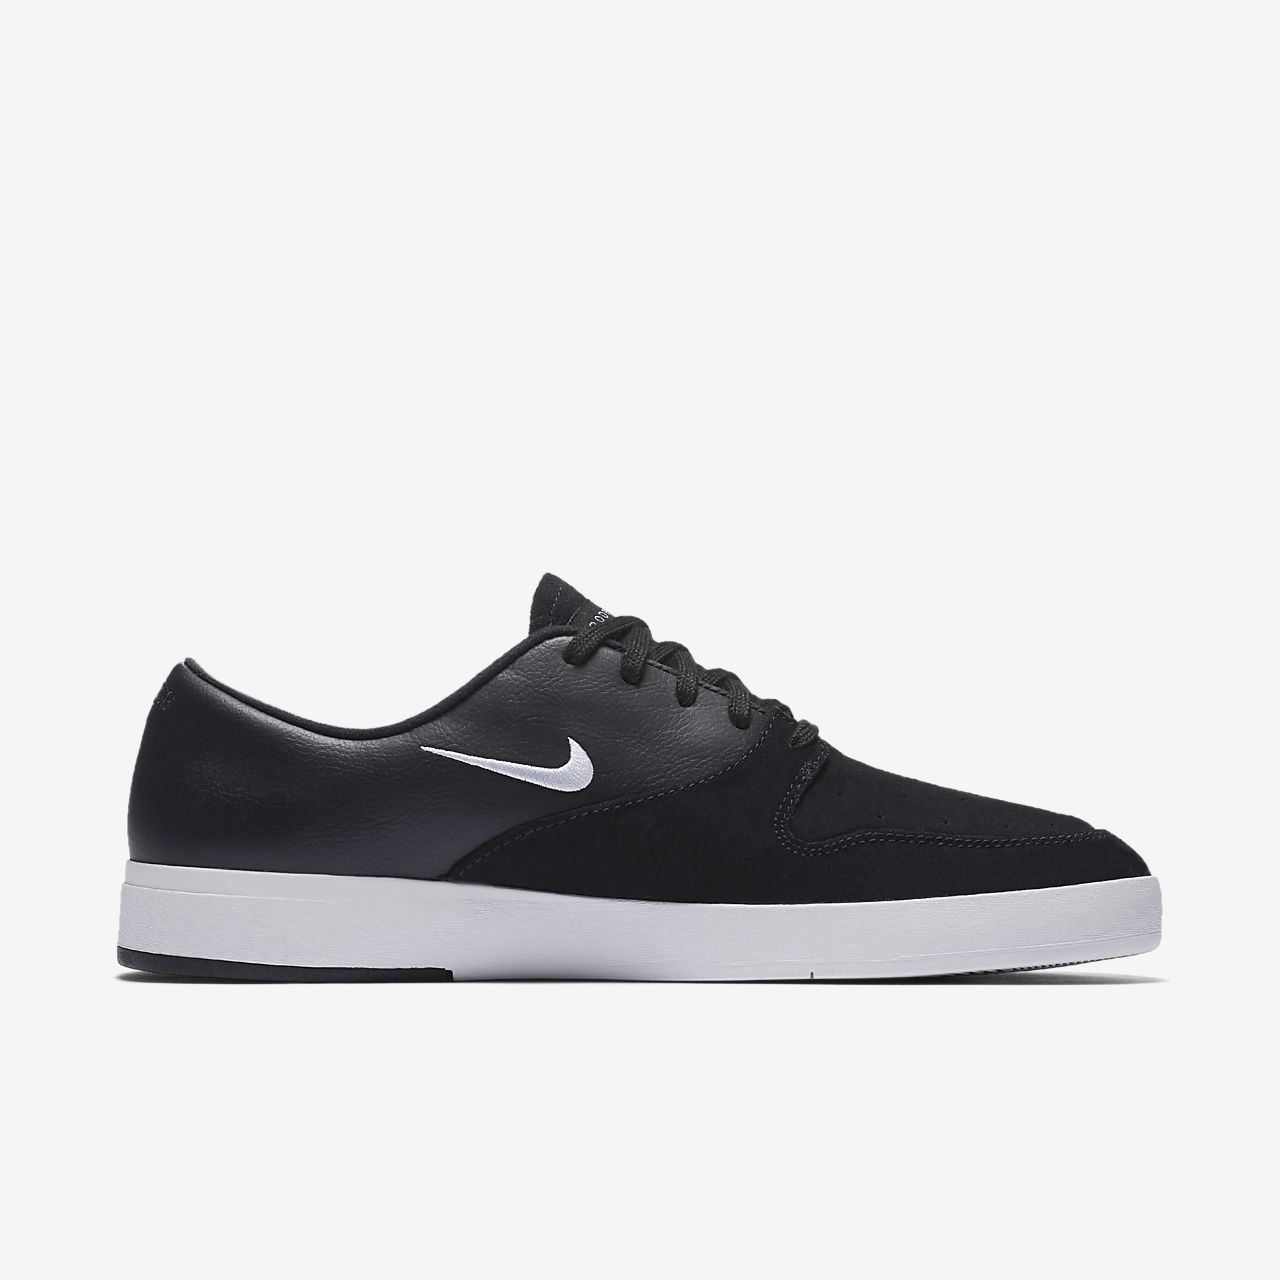 Nike SB Zoom Paul Rodriguez Ten Men's Skateboarding Shoes Black/White wZ3069S